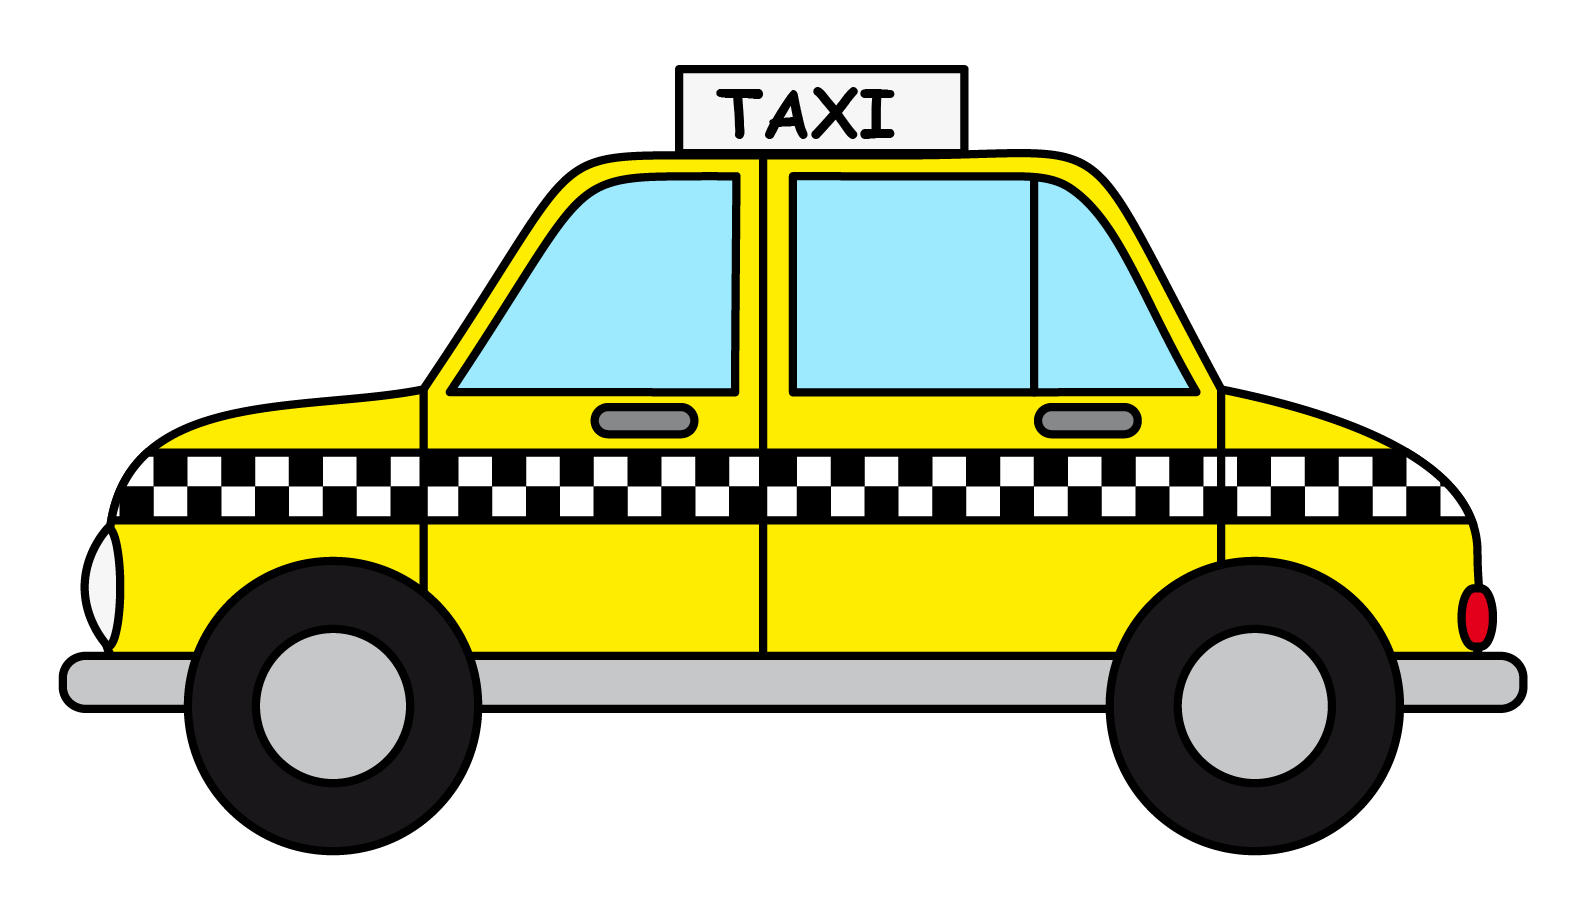 Taxi clipart auto Taxi Cartoon Free & Cab